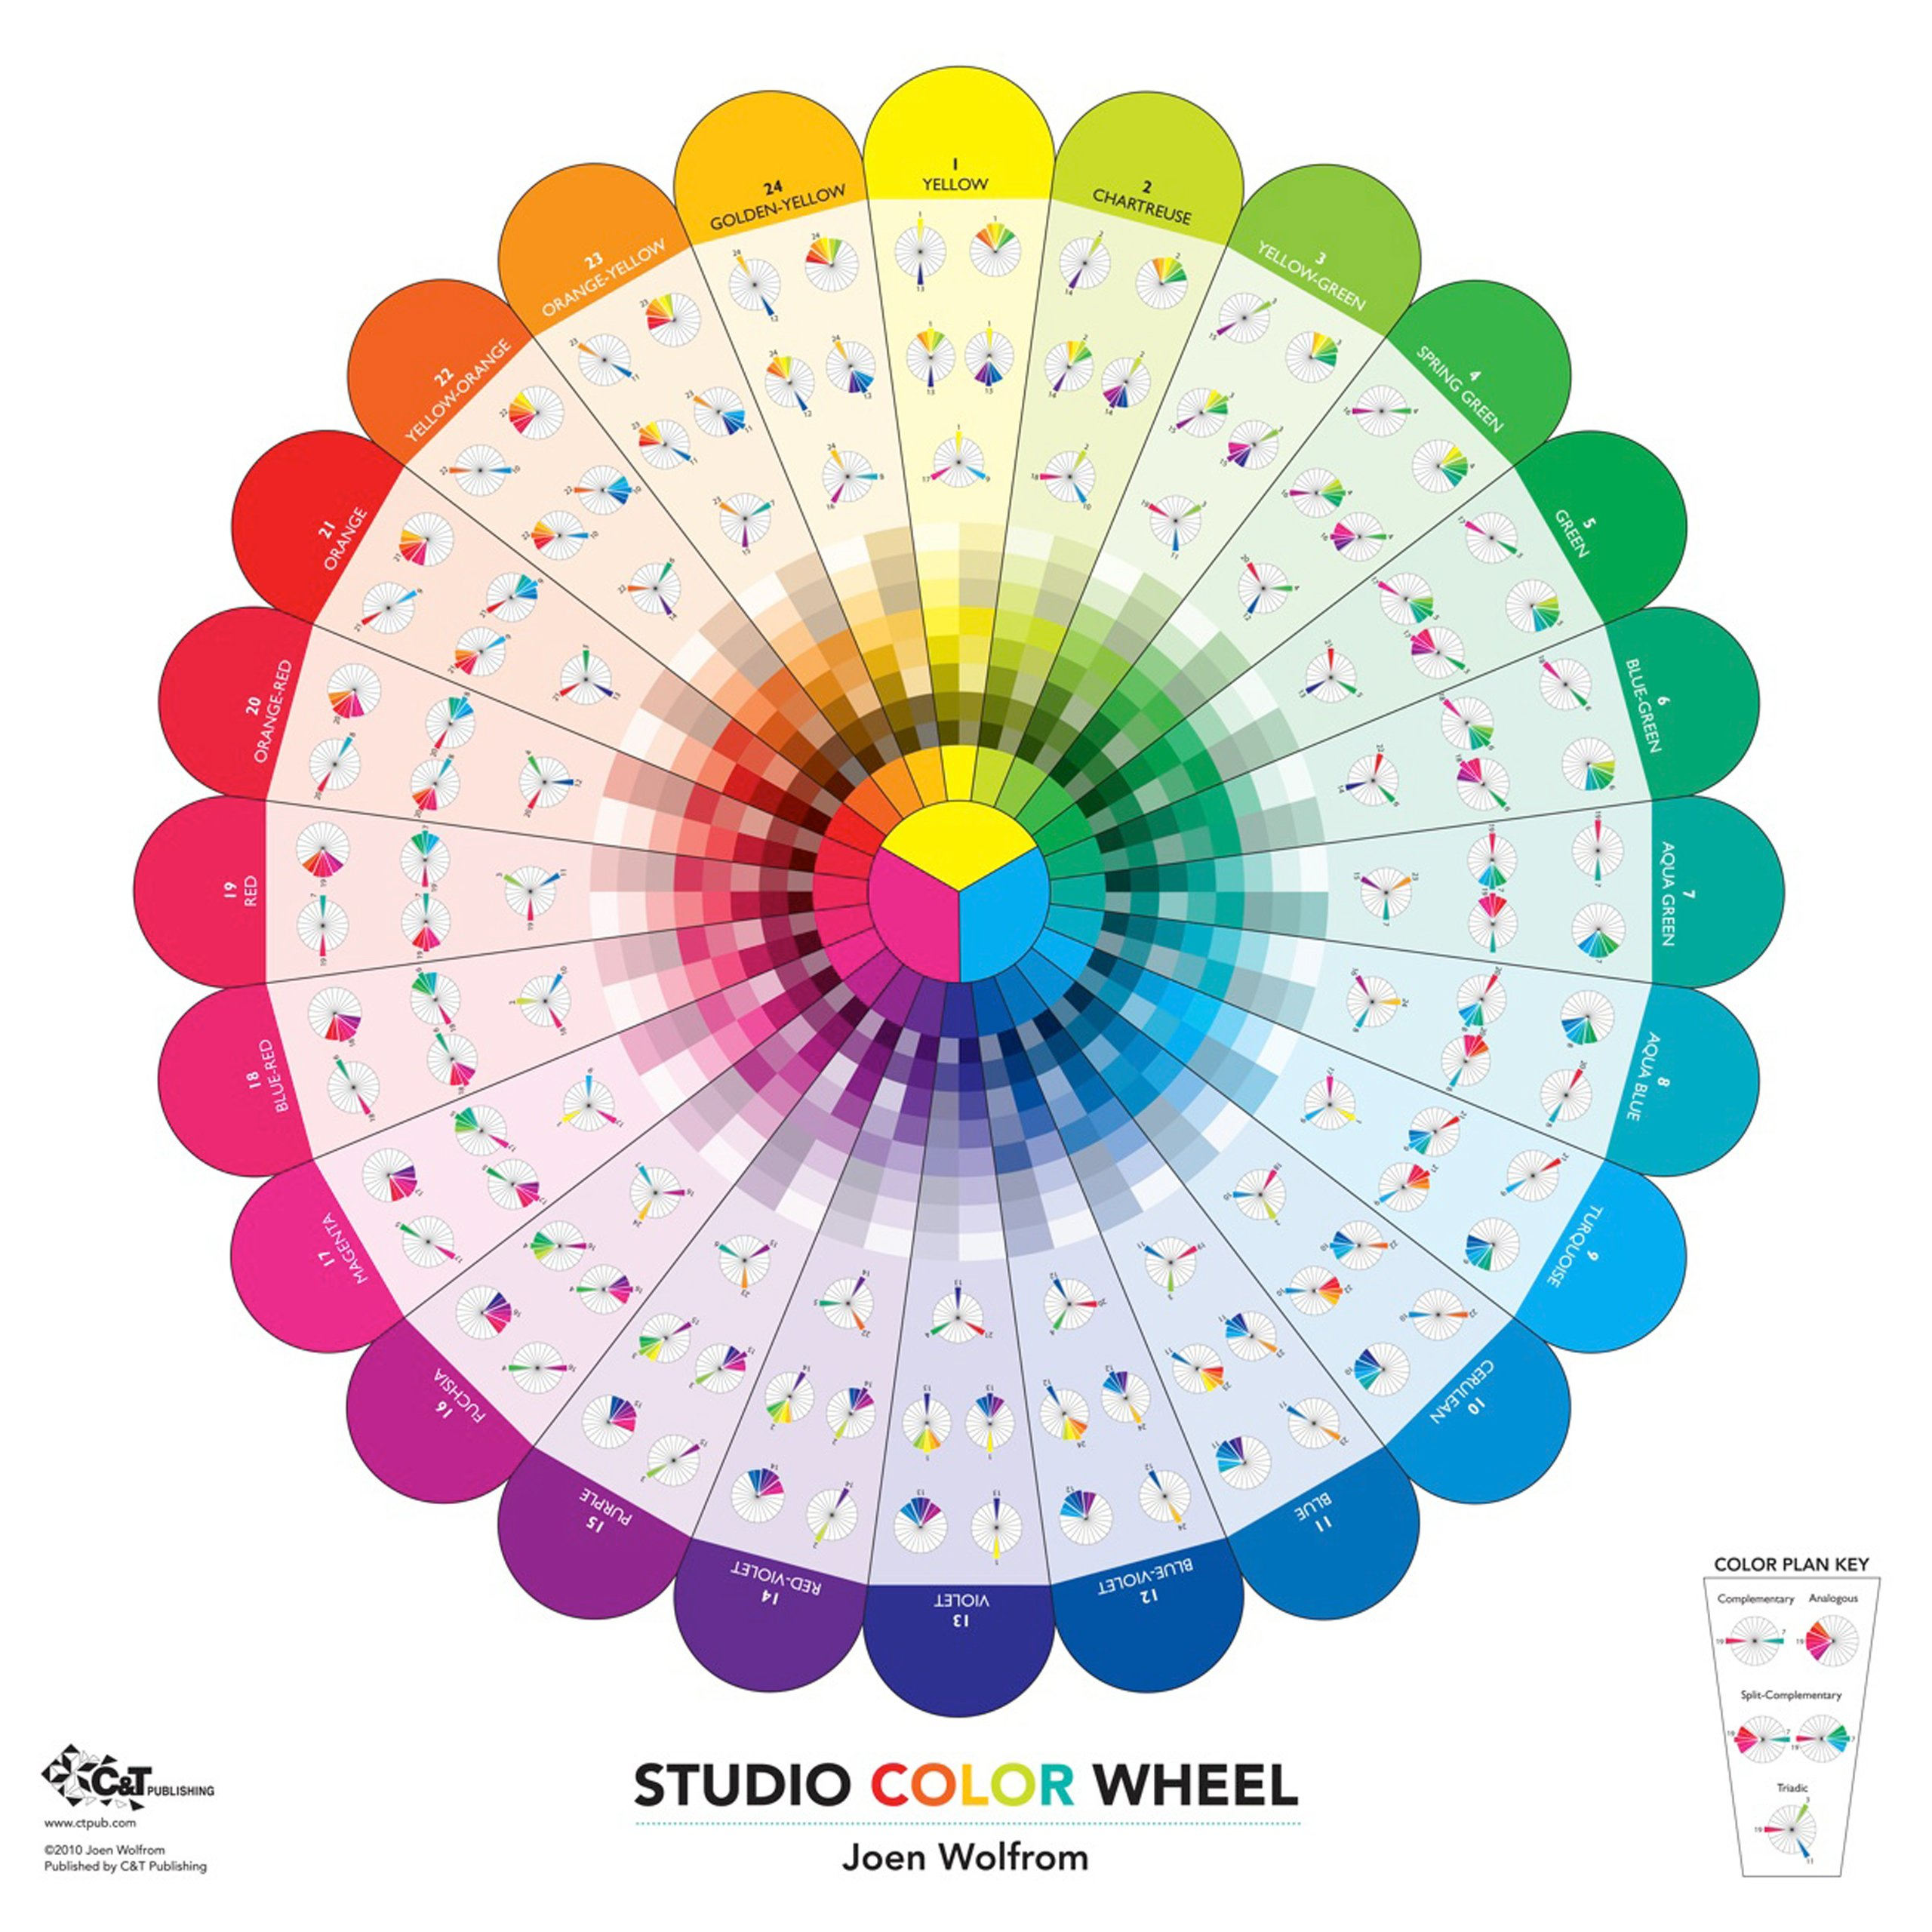 Studio Color Wheel 28 X Double Sided Poster Joen Wolfrom 9781607053507 Amazon Books